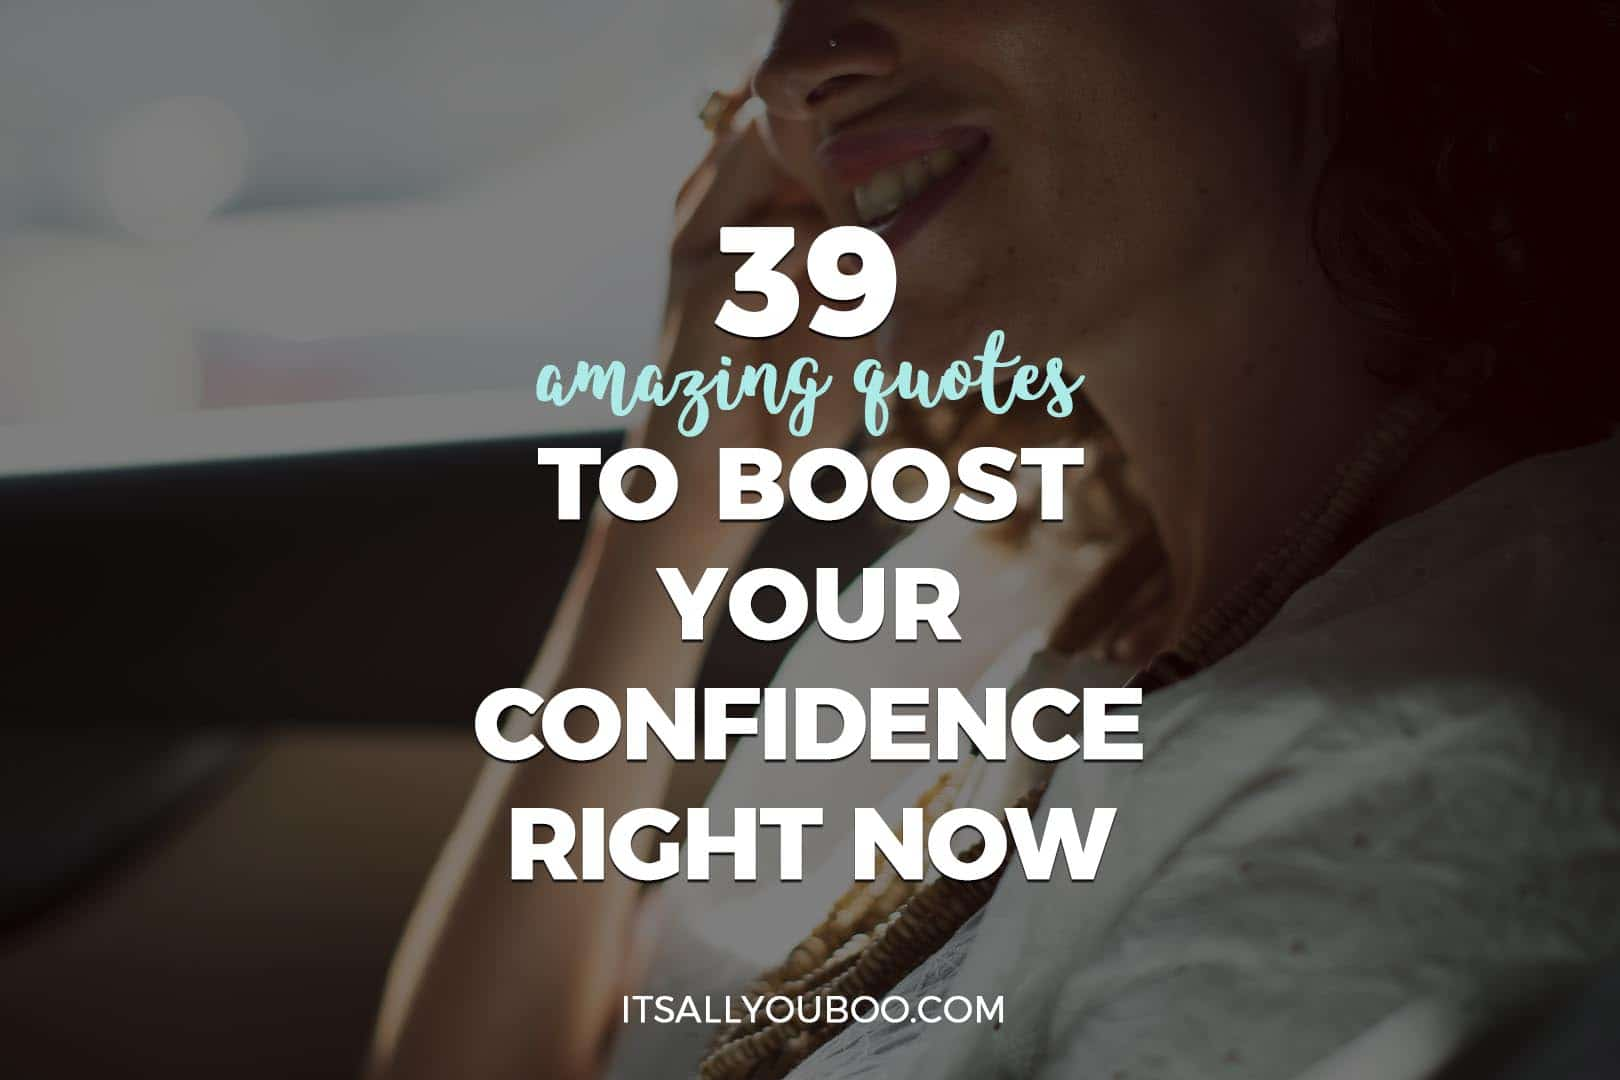 39 Amazing Quotes to Boost Your Confidence Right Now